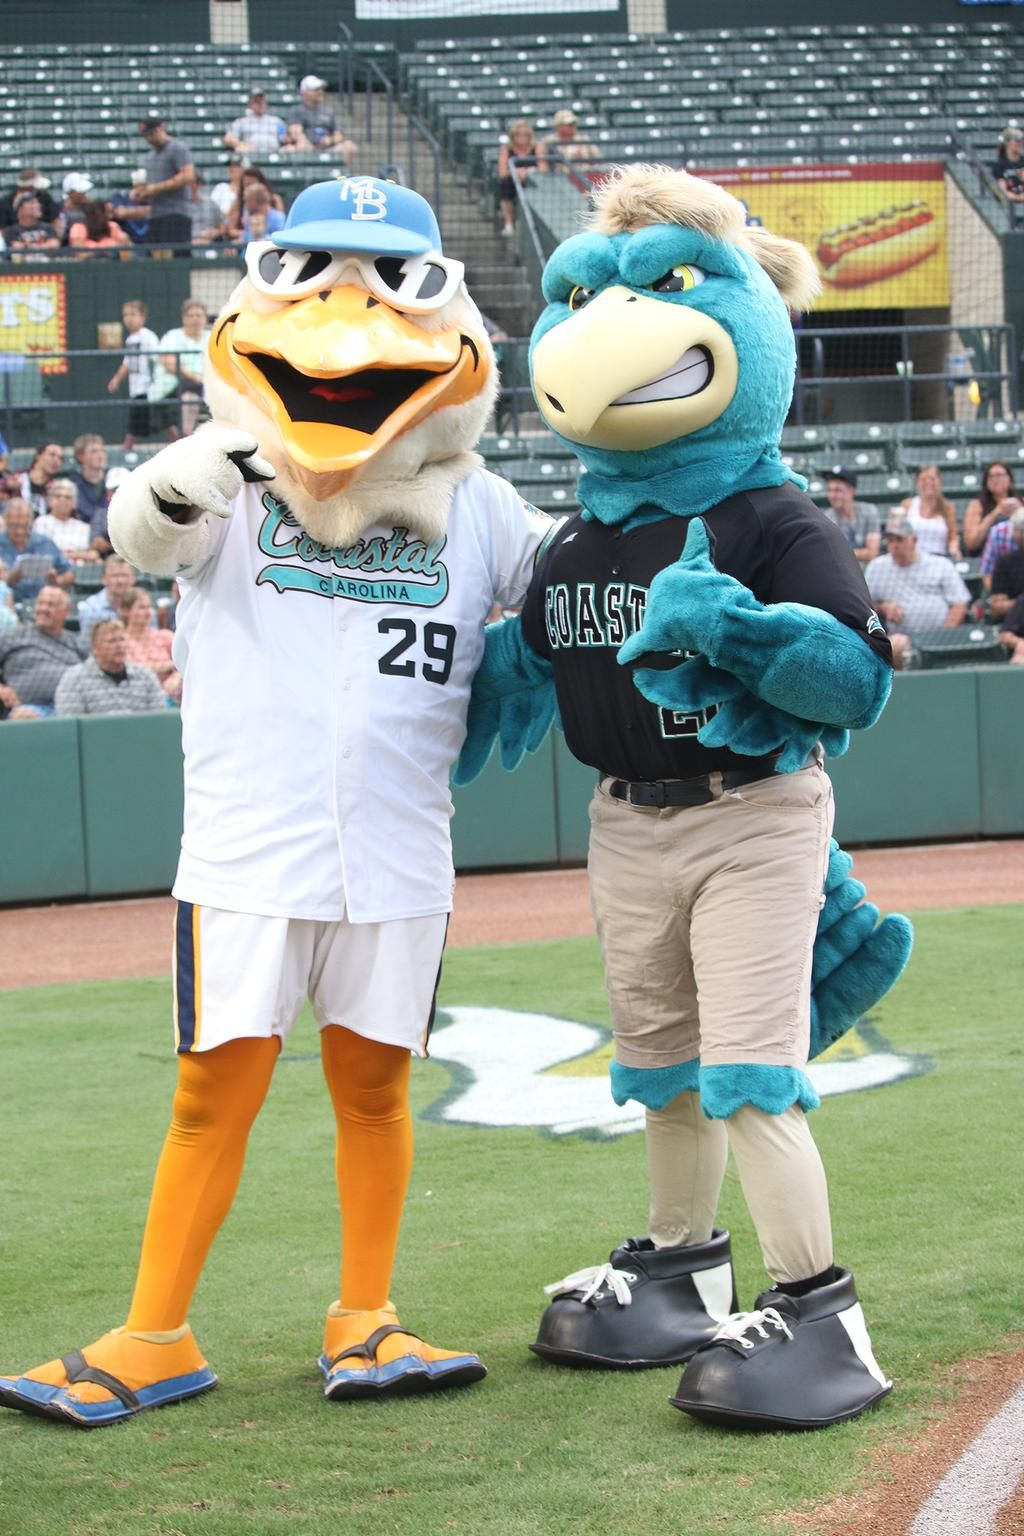 Chauncey Hanging Out With Splash The Myrtle Beach Pelicans Mascotat Their College Night